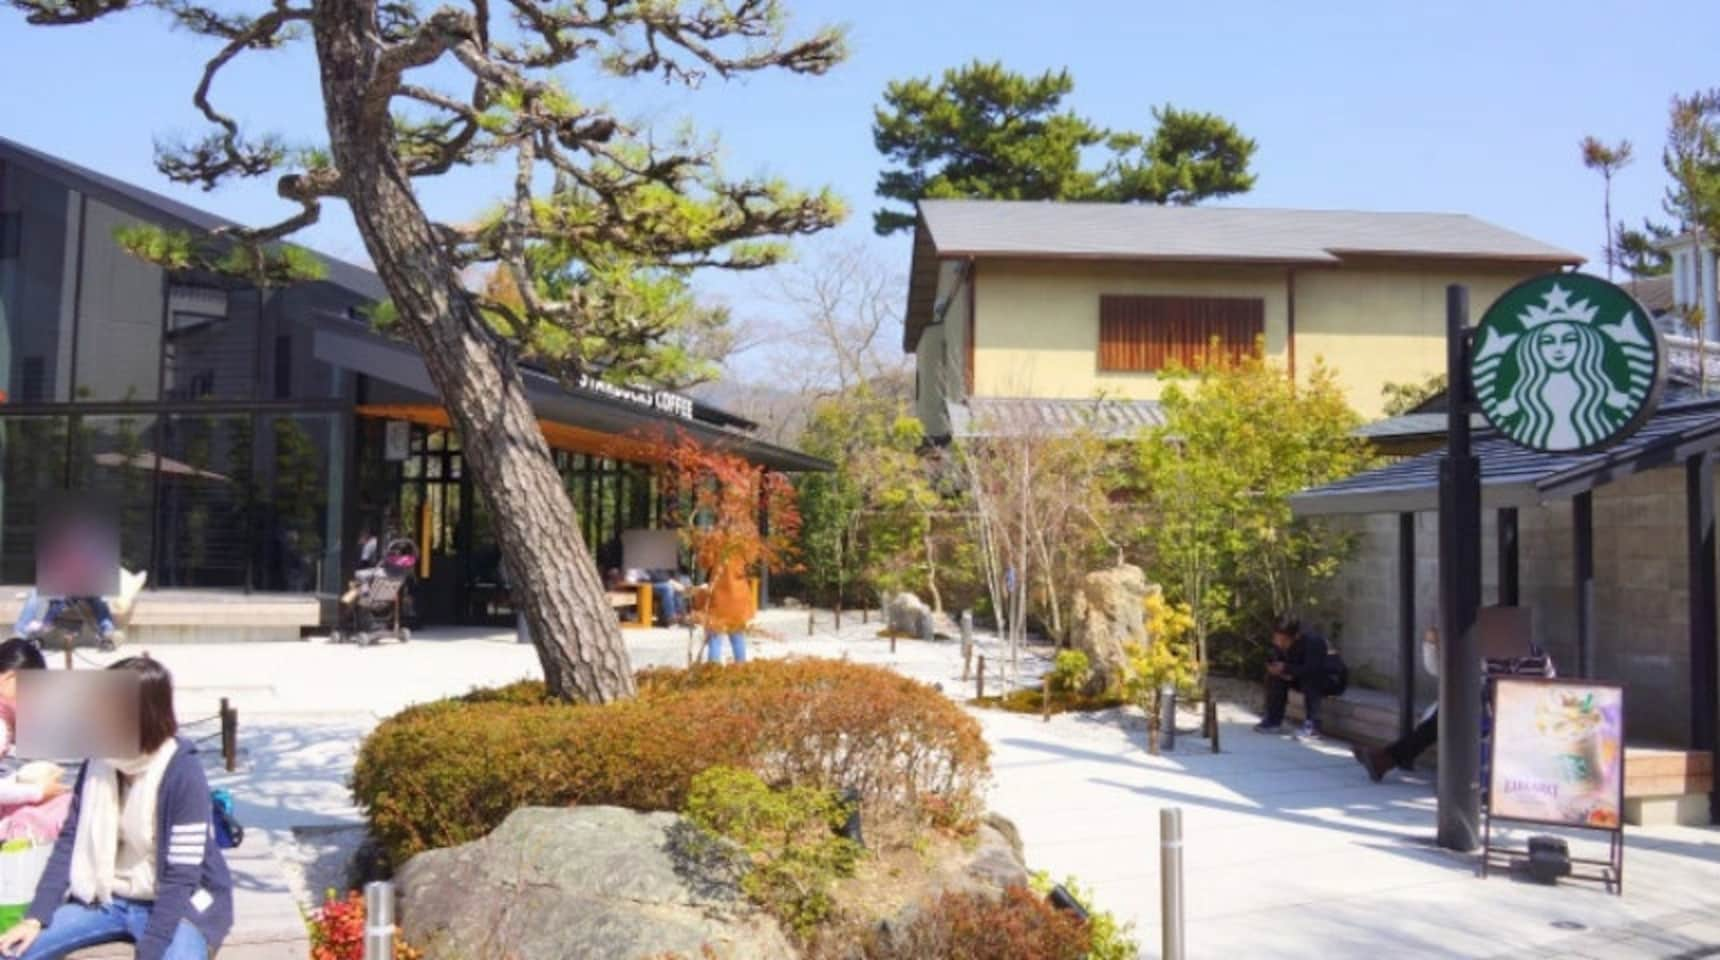 This Starbucks has a Japanese Garden!